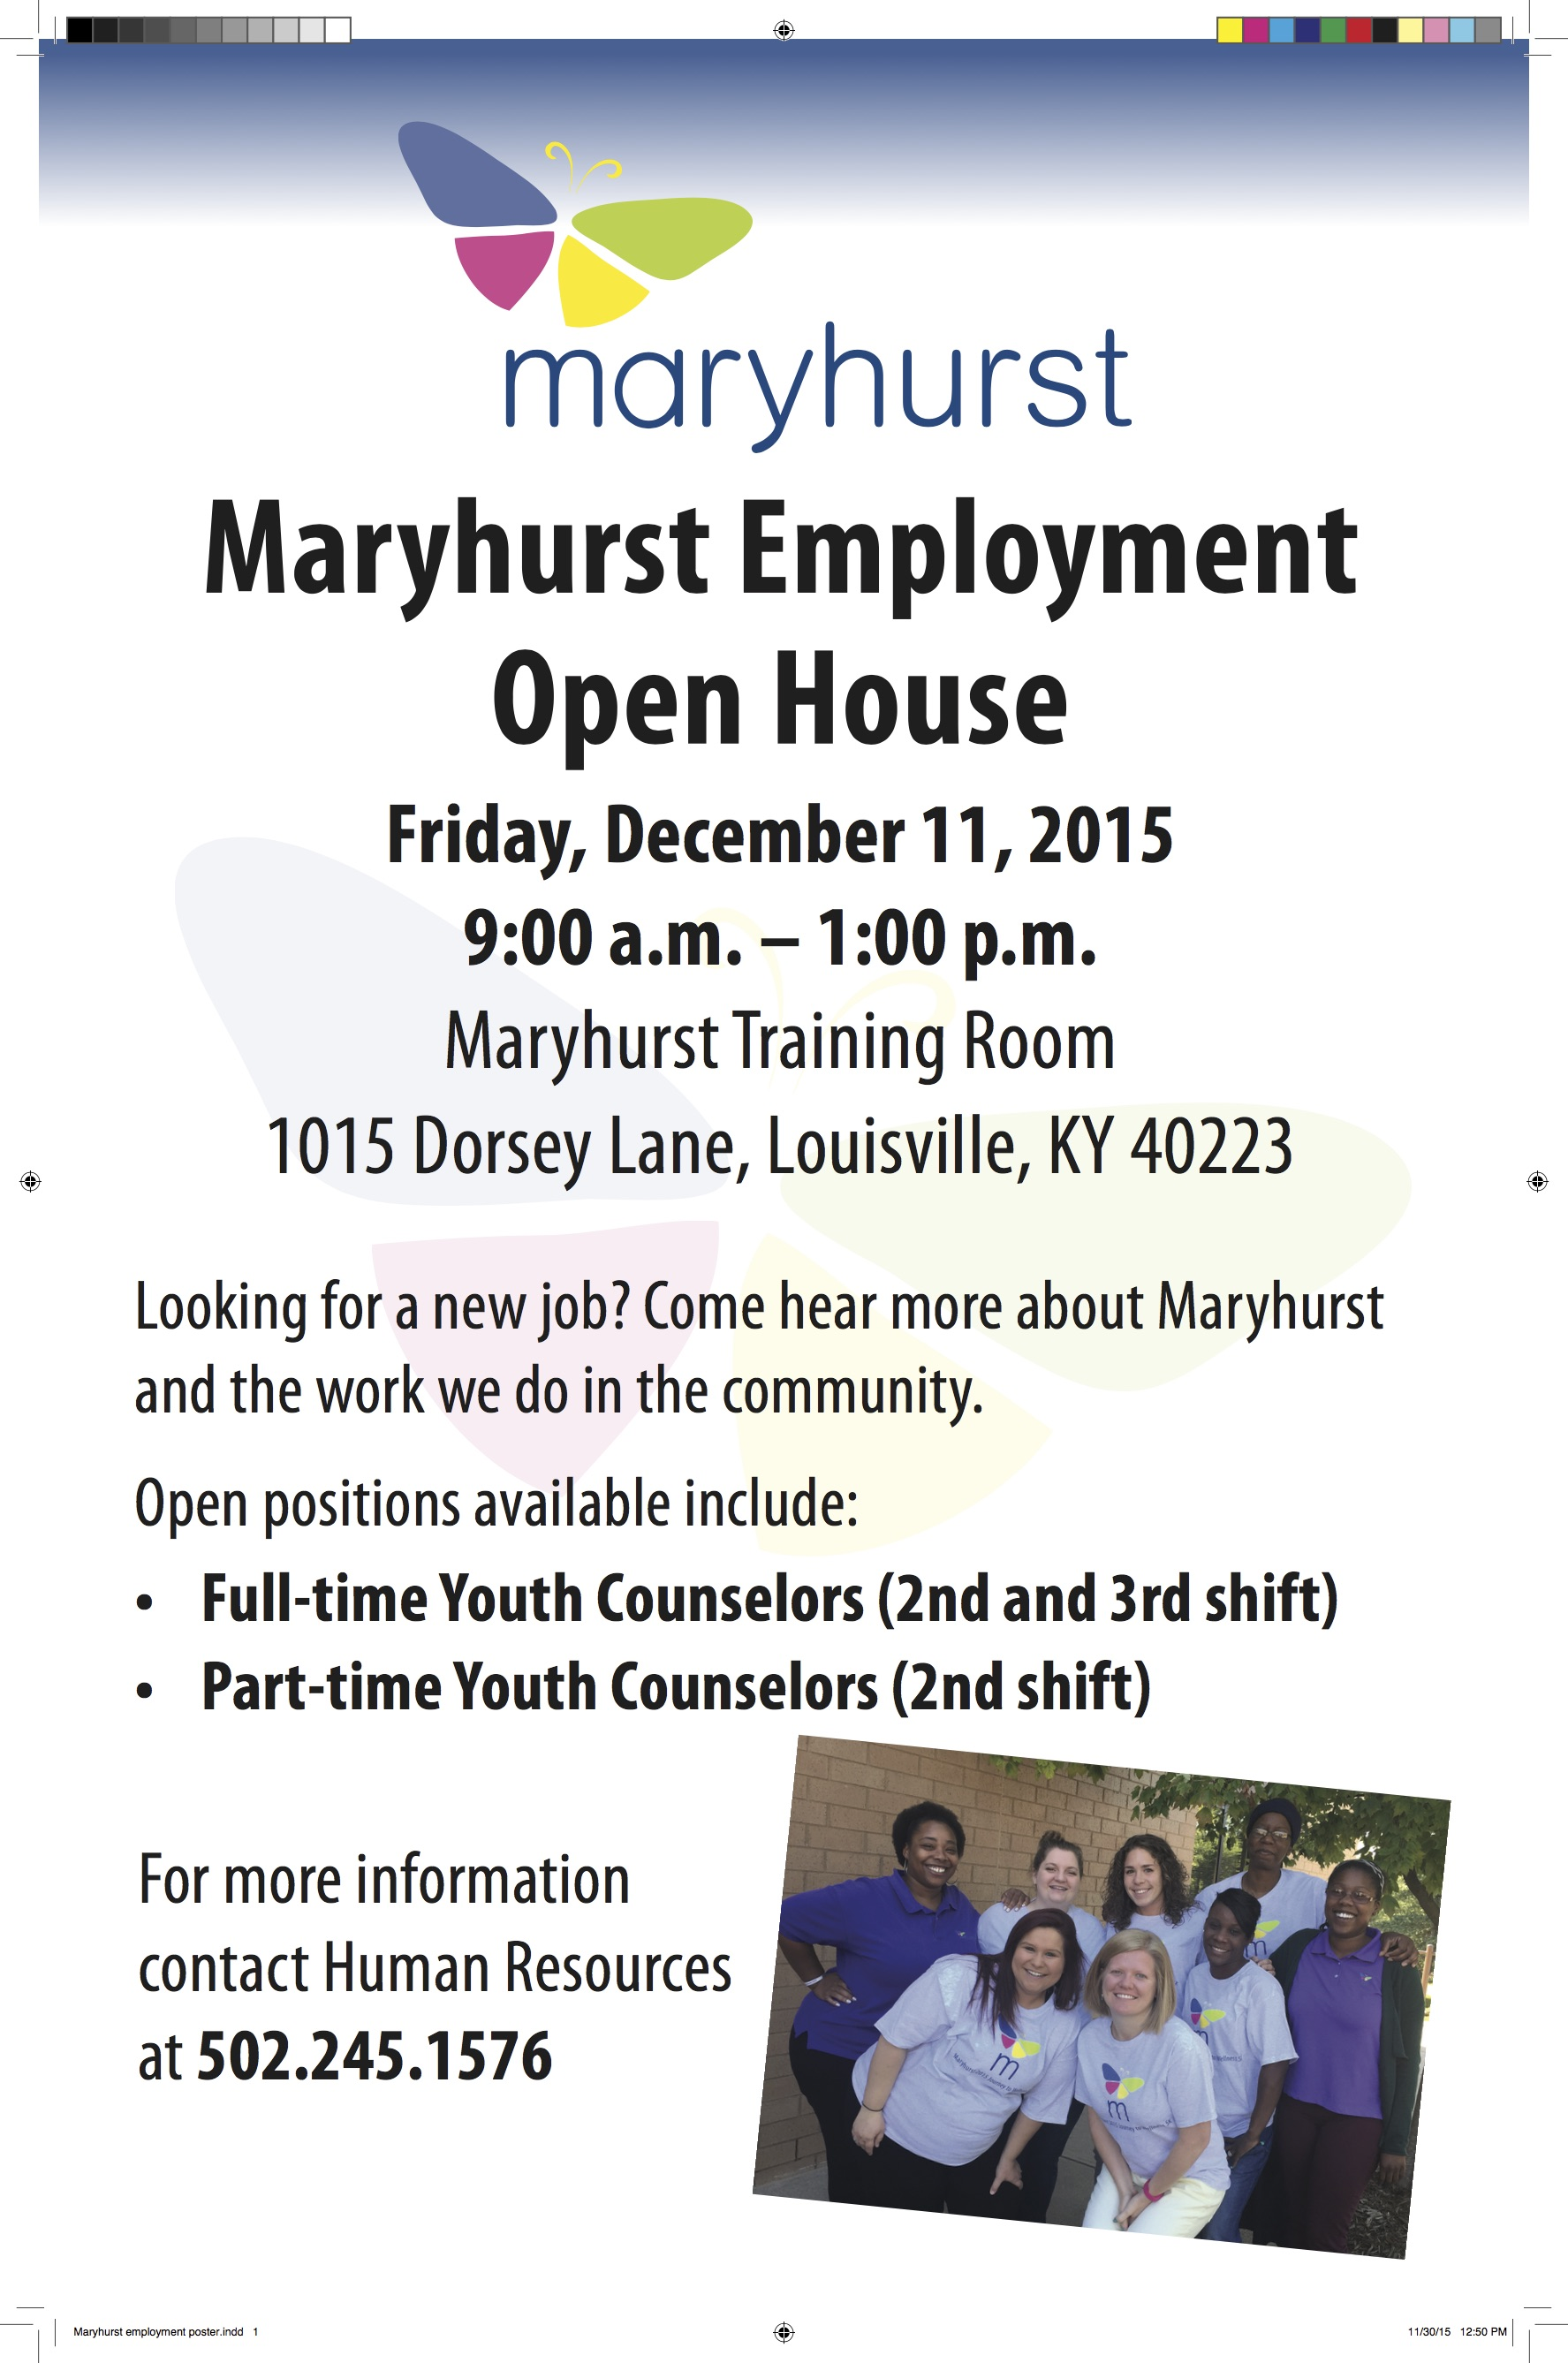 maryhurst employment poster open positions available include full time youth counselors 2nd 3rd shift - 2nd Shift Careers 2nd Shift Employment 2nd Shift Jobs